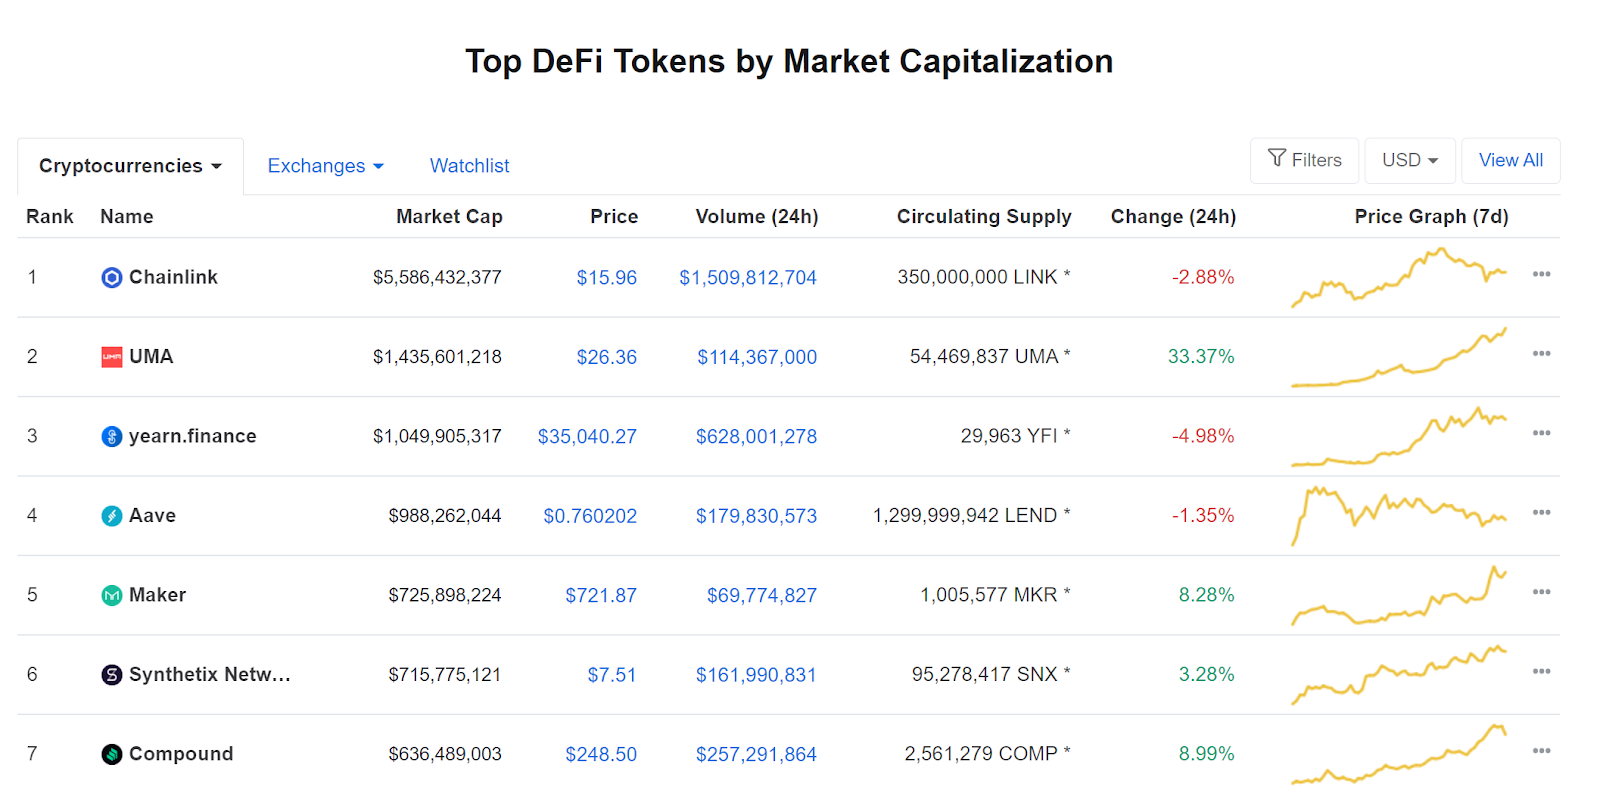 DeFi tokens on CoinMarketCap by market cap